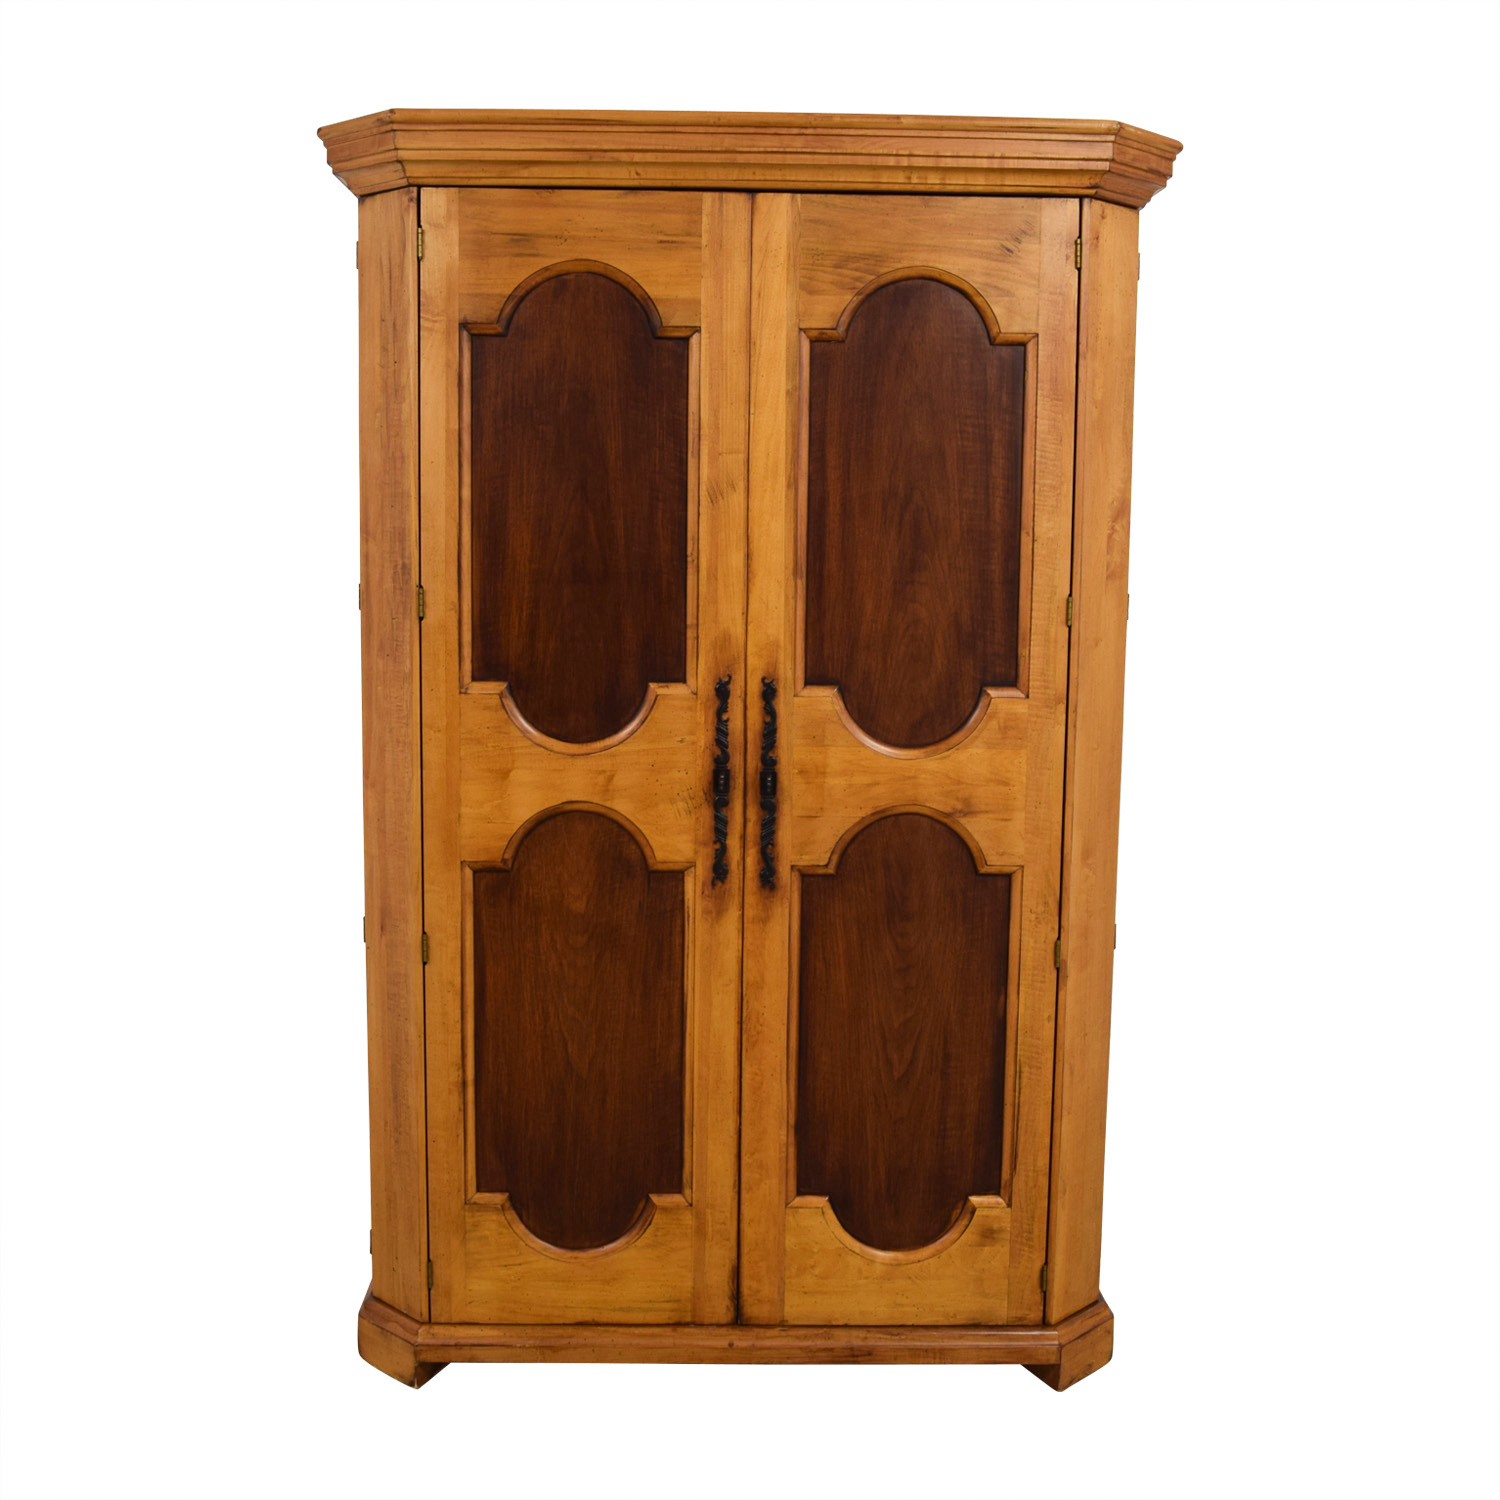 Buy Platypus Two Toned Armoire Platypus ...